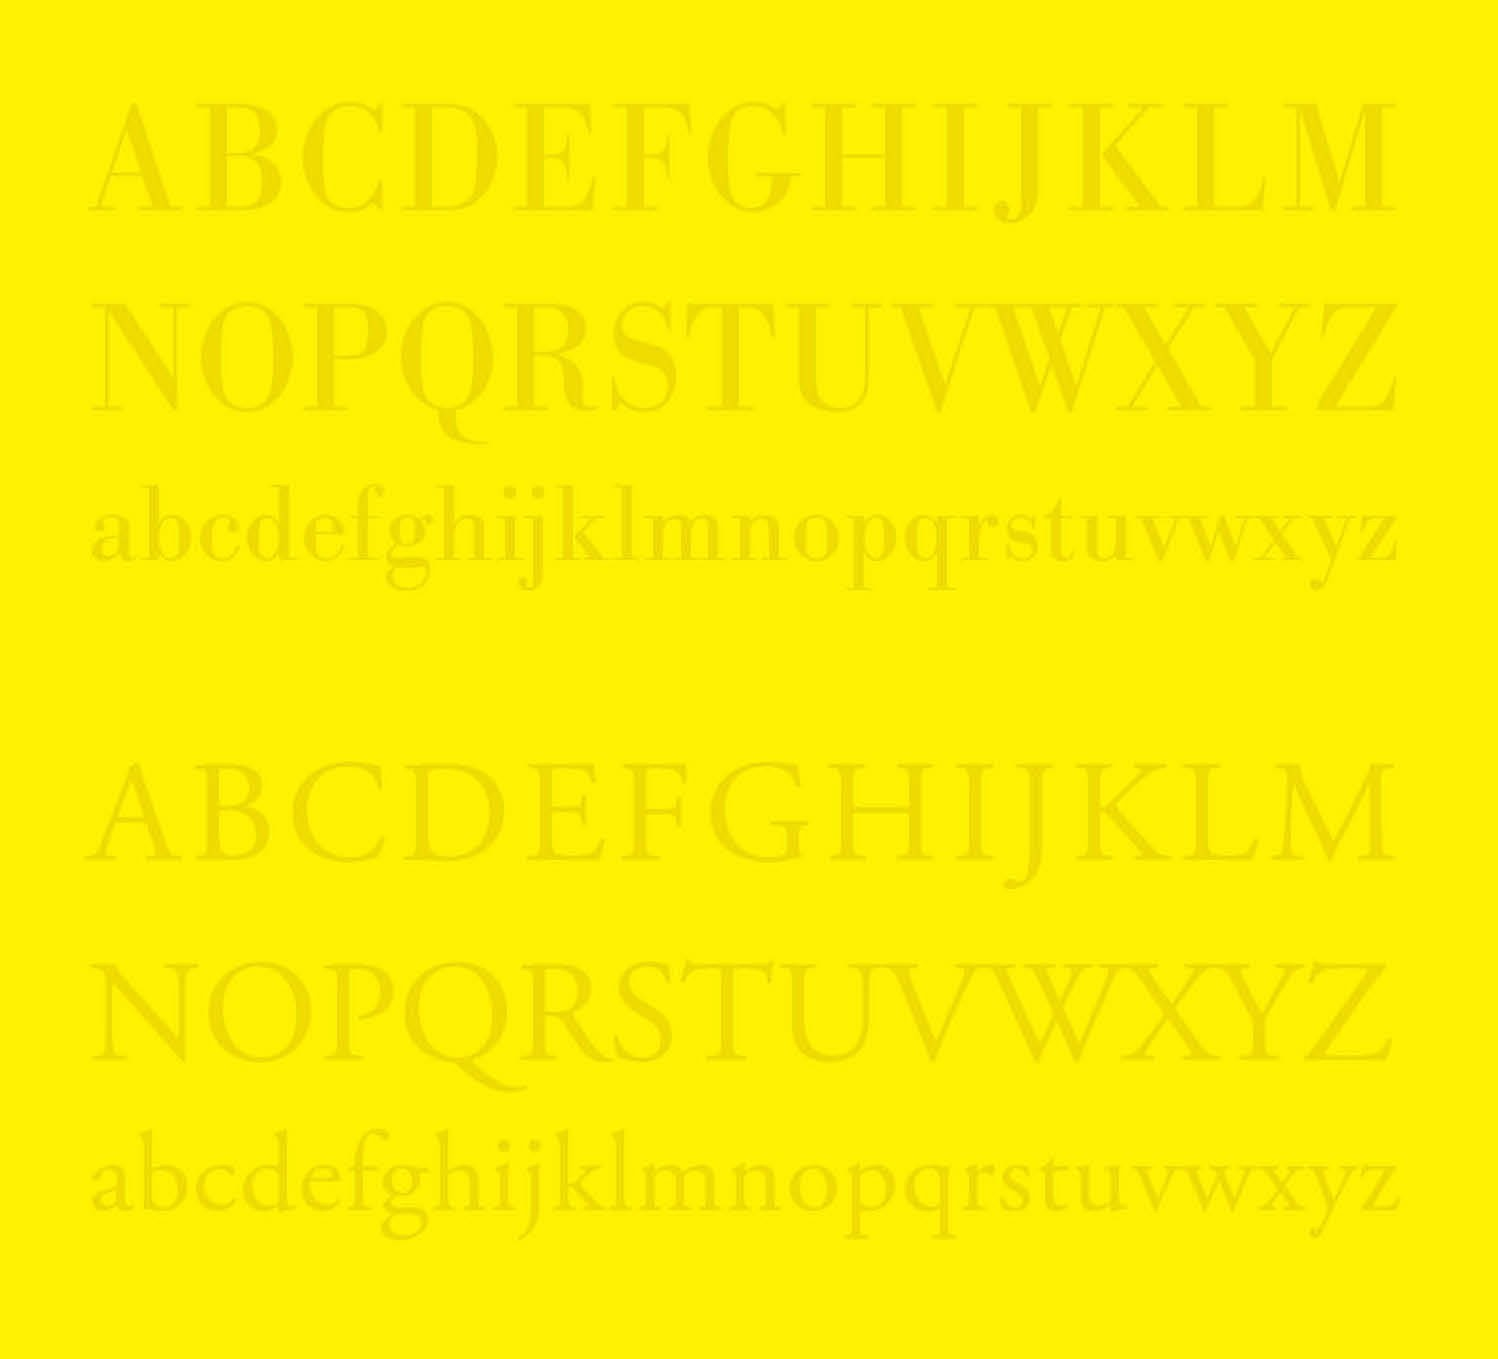 On (Adobe) Garamond's Repeating and Juxtaposing Parallels in